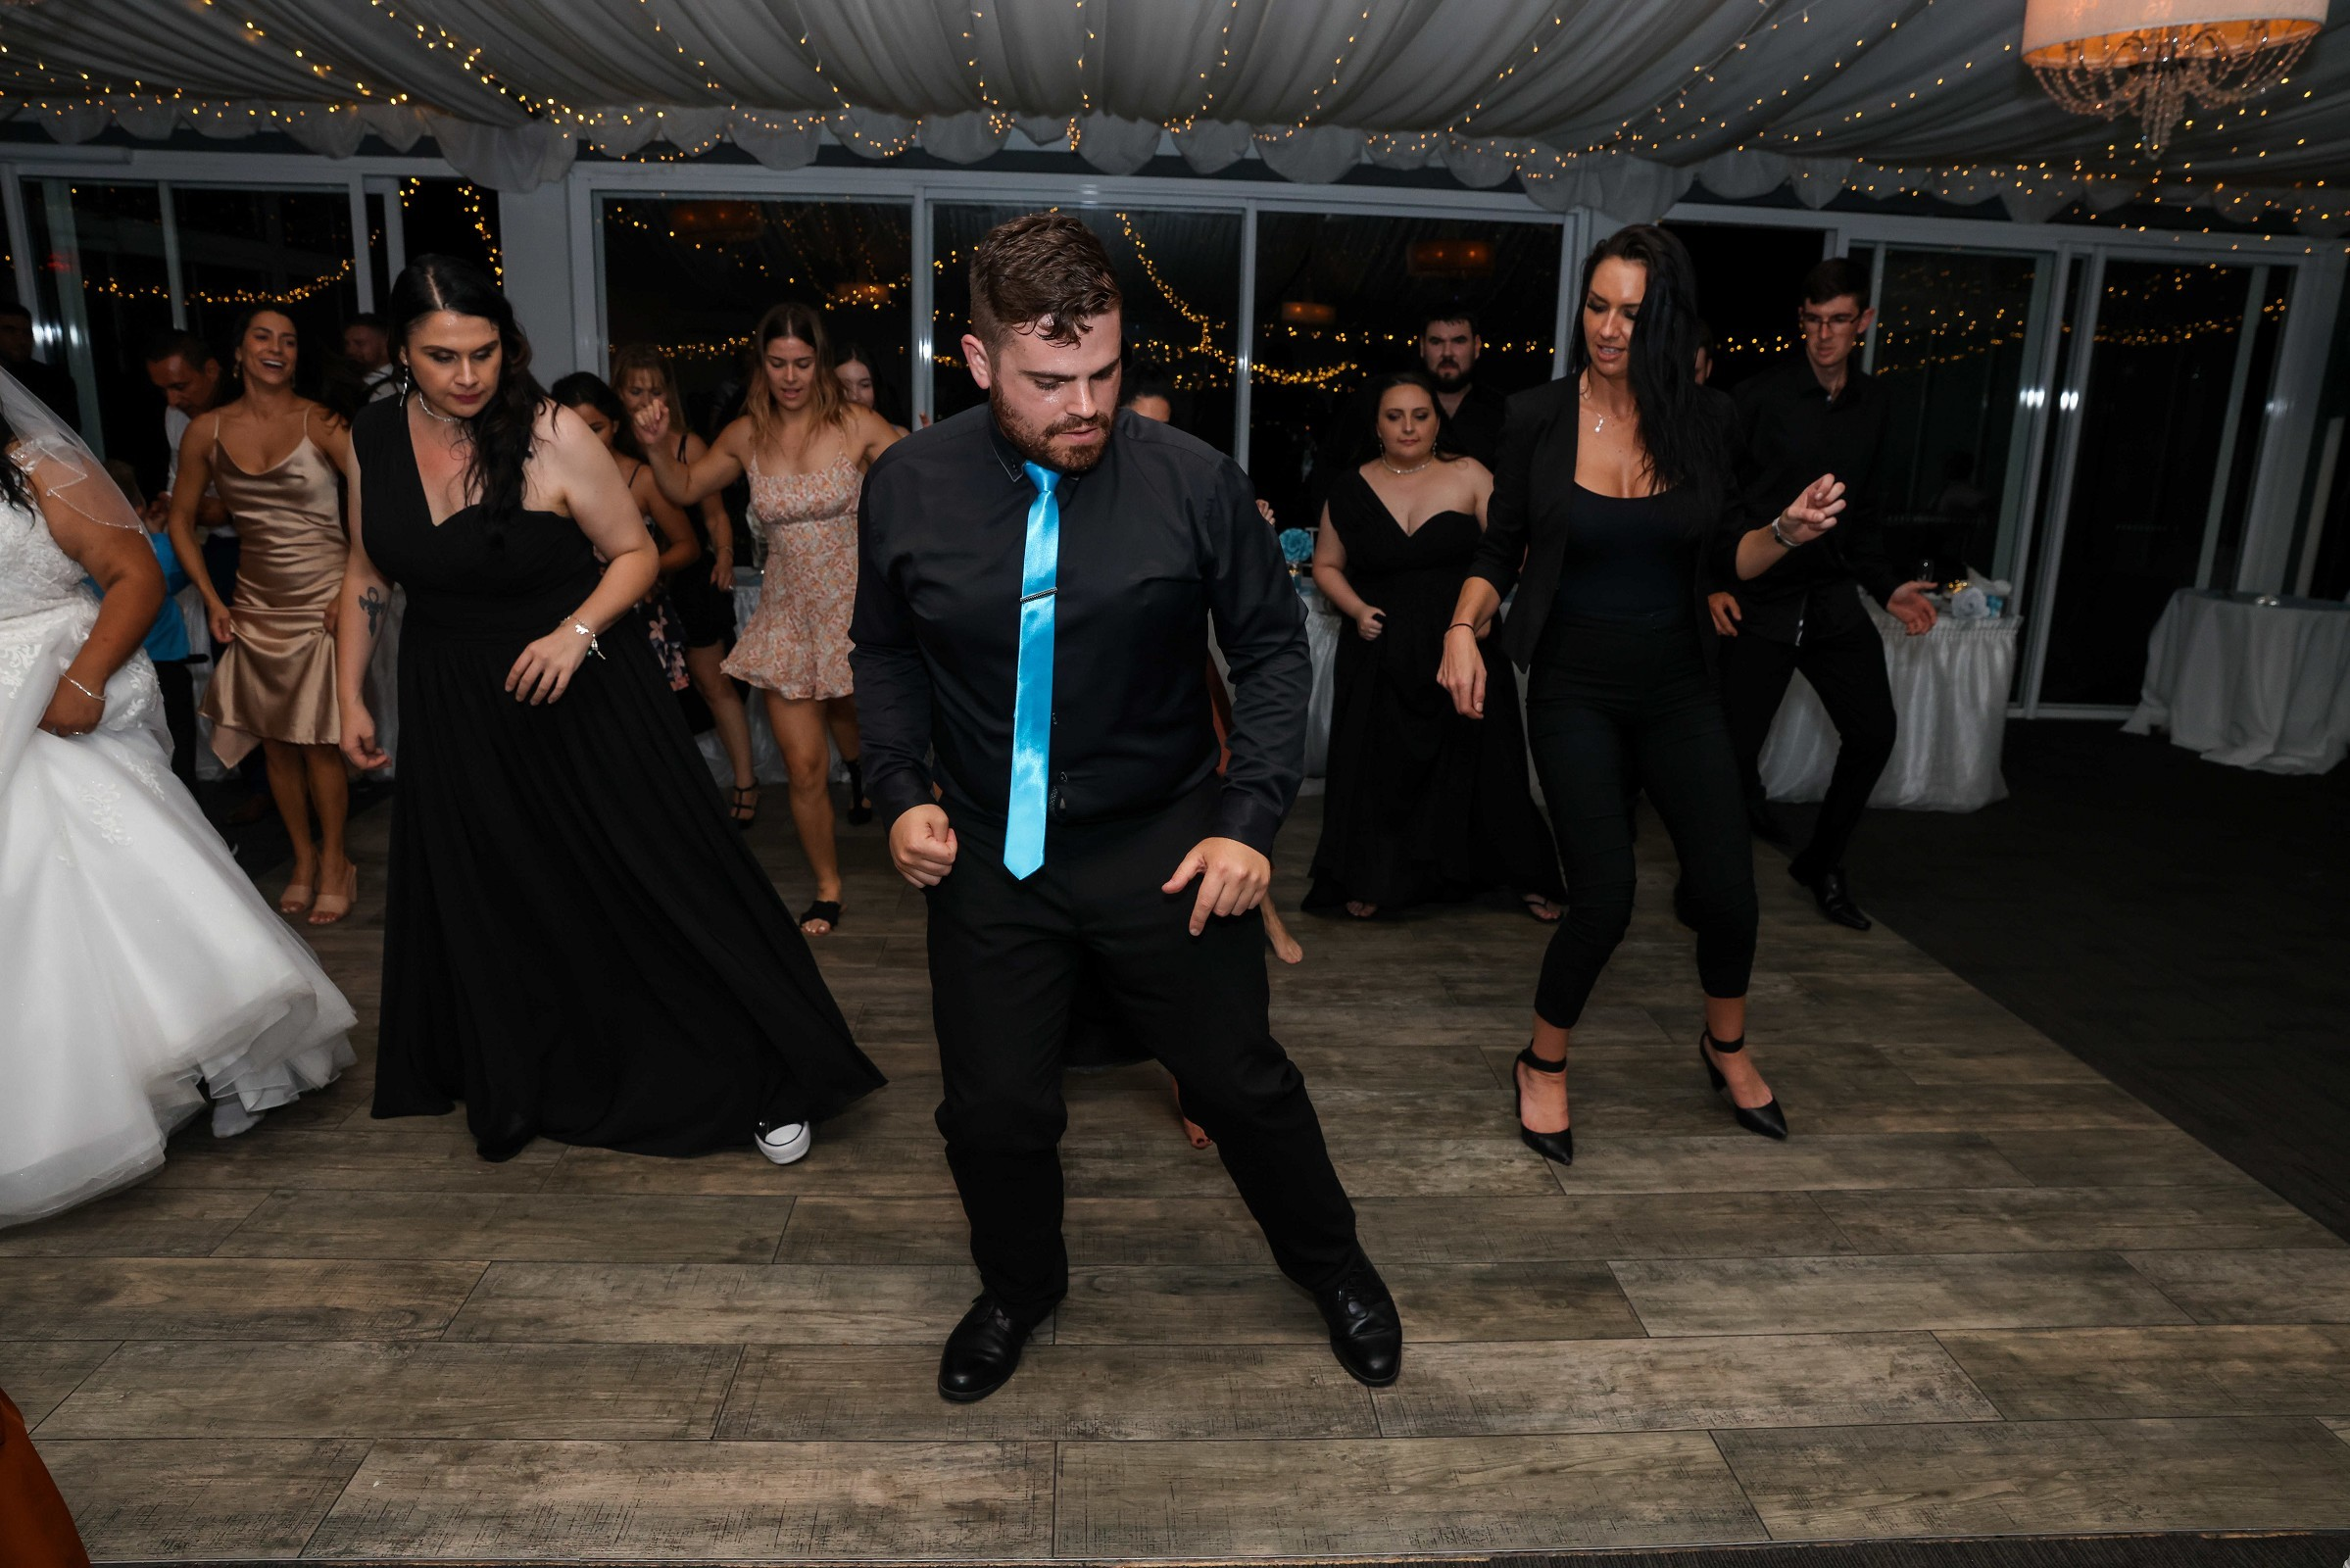 Don't know how to dance? Never fear, Nathan will teach you!